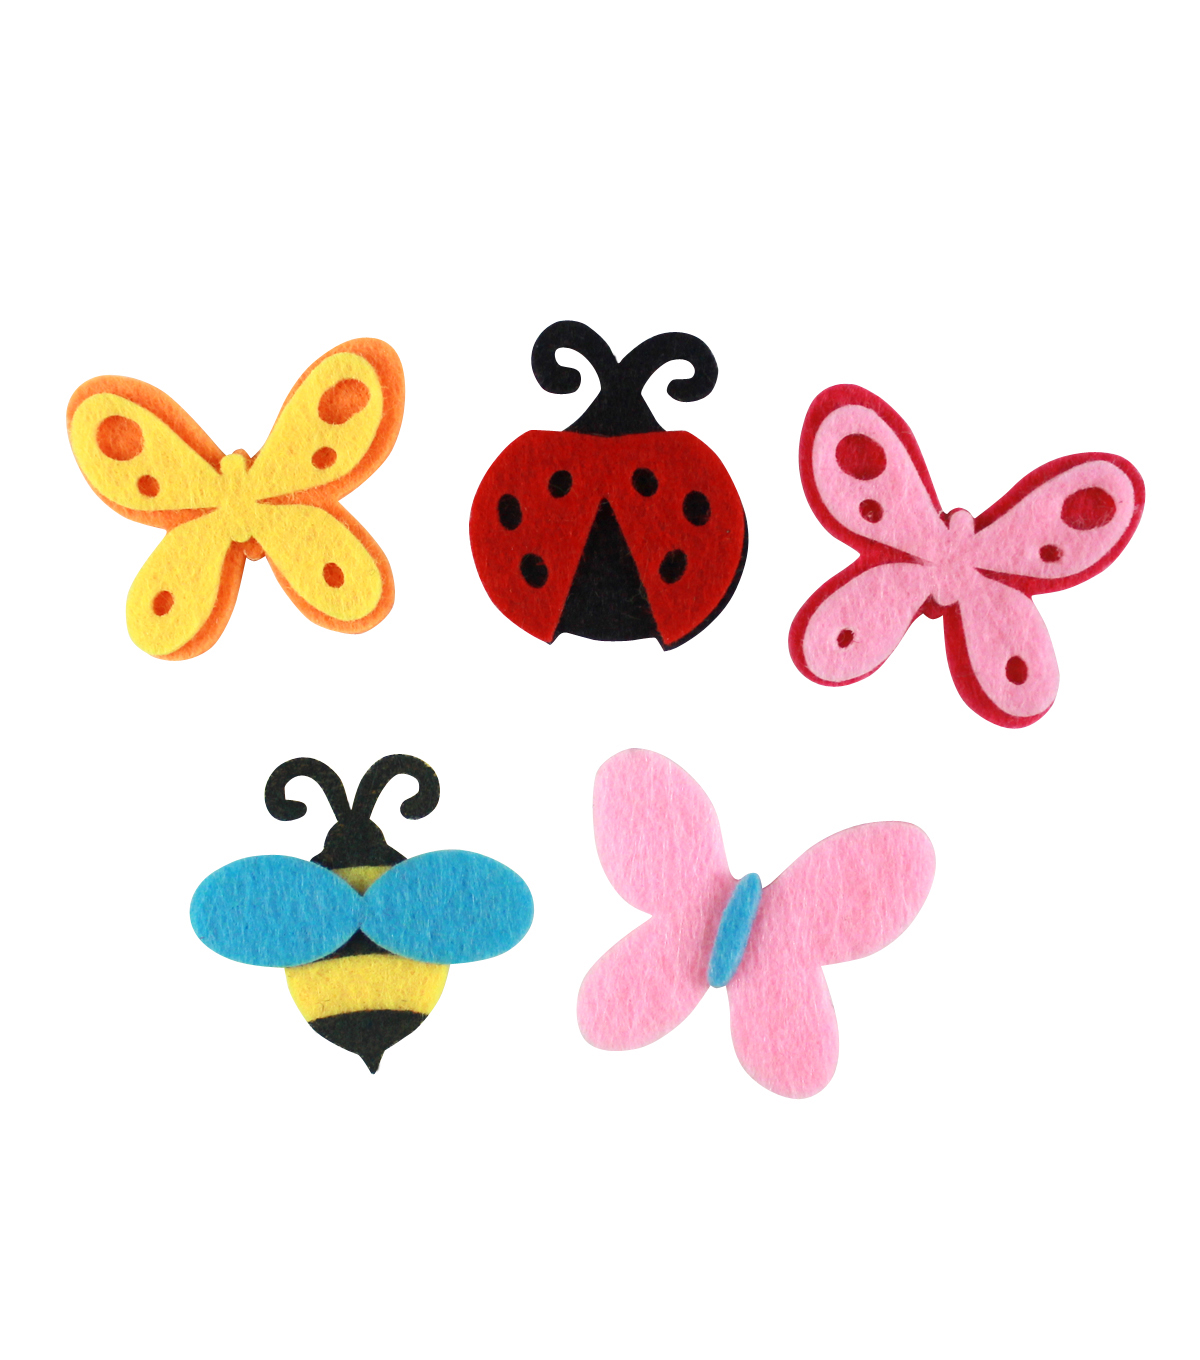 Little Makers Felt Adhesive Stickers-Bugs